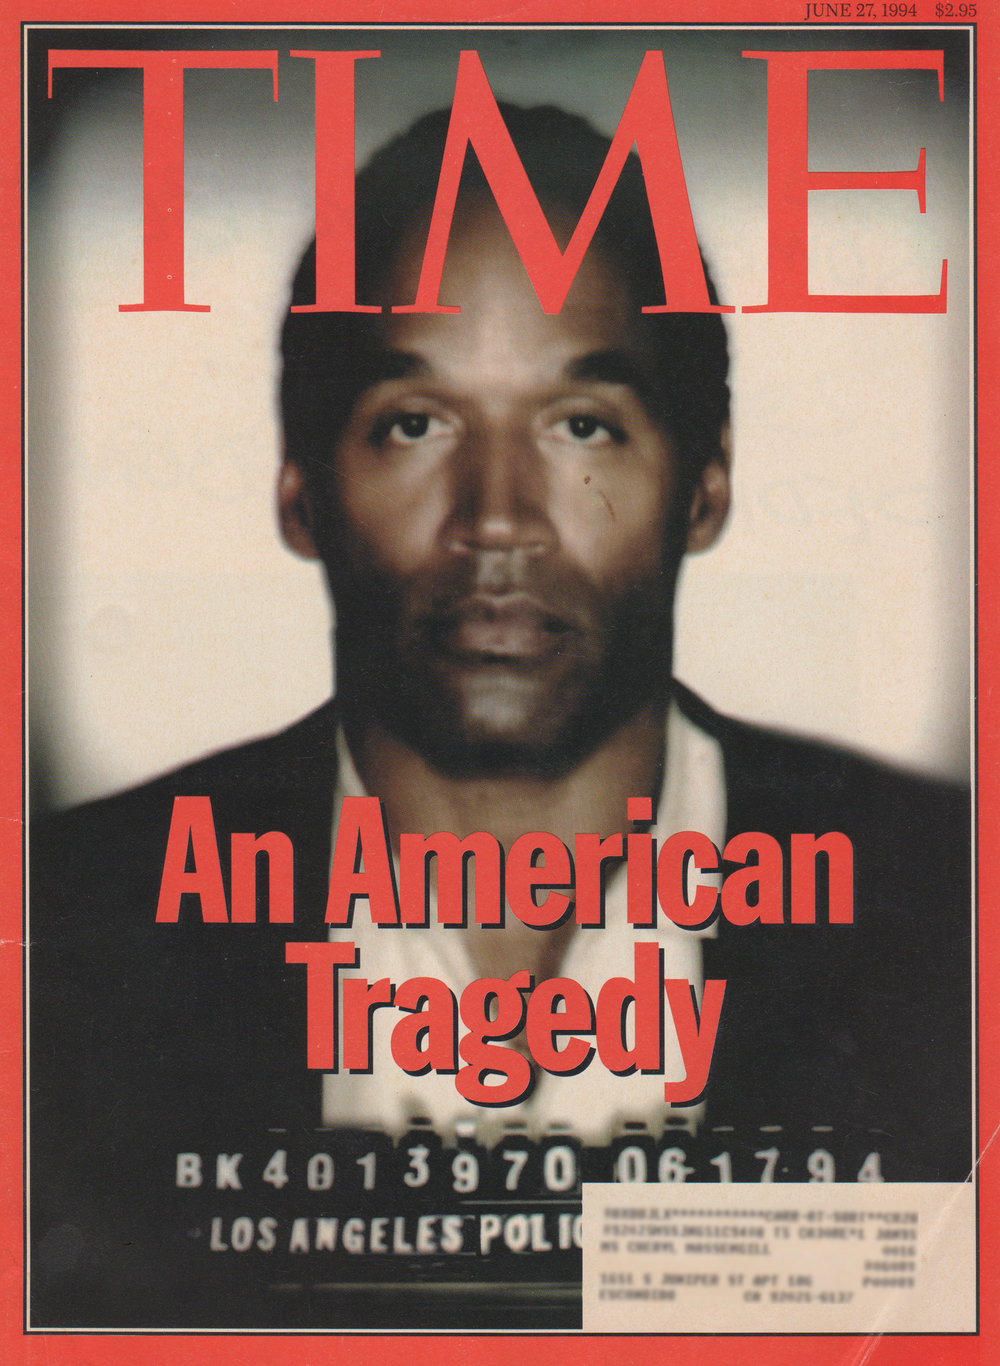 Oj simpson essays on the trial